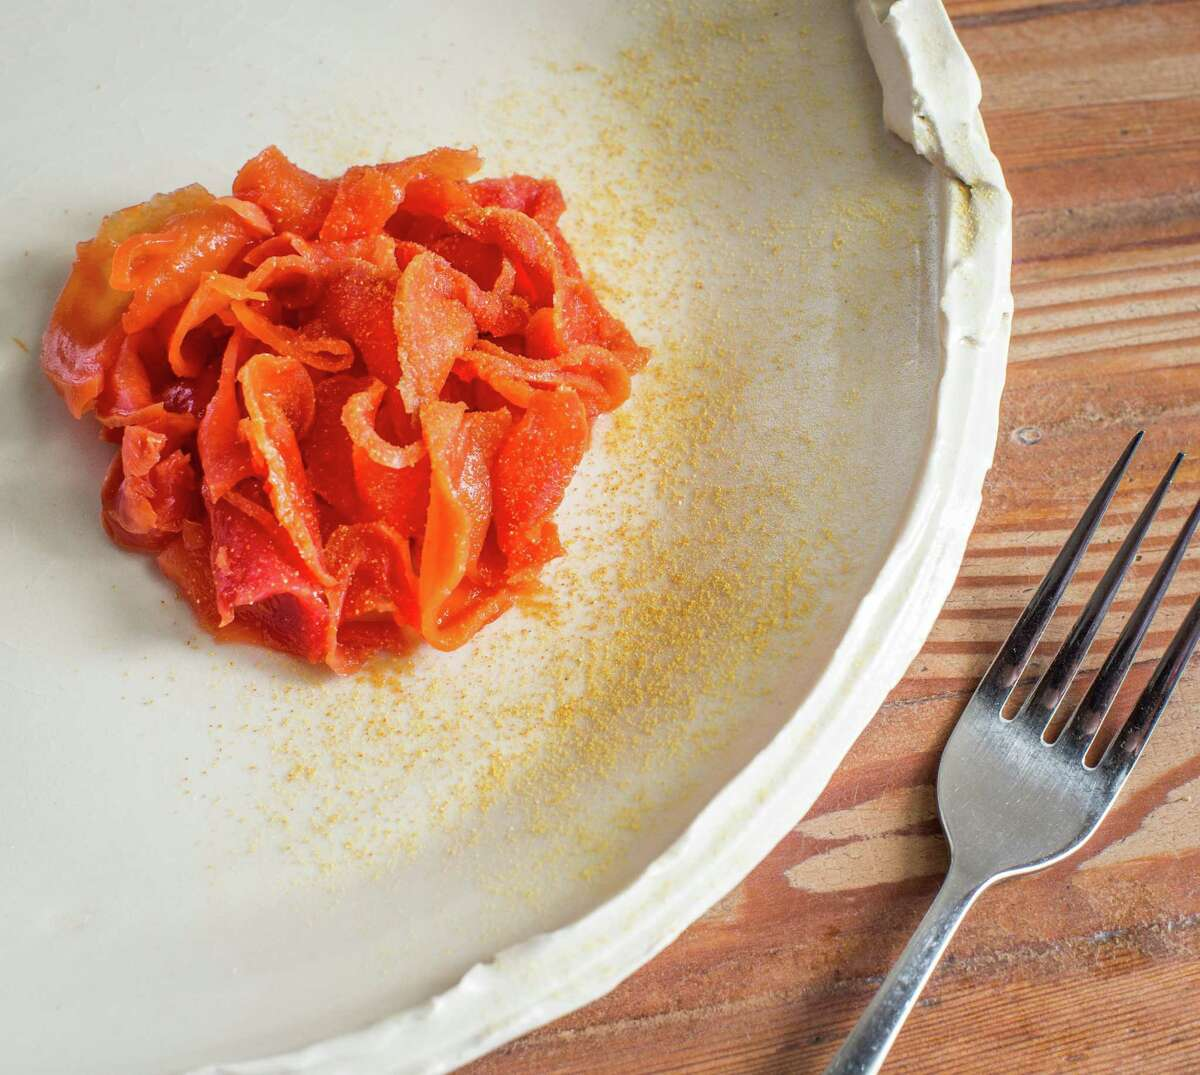 Oxheart's dried beets soaked in citrus juice, with lime leaf, 'red' shiso and dried mandarin peel.